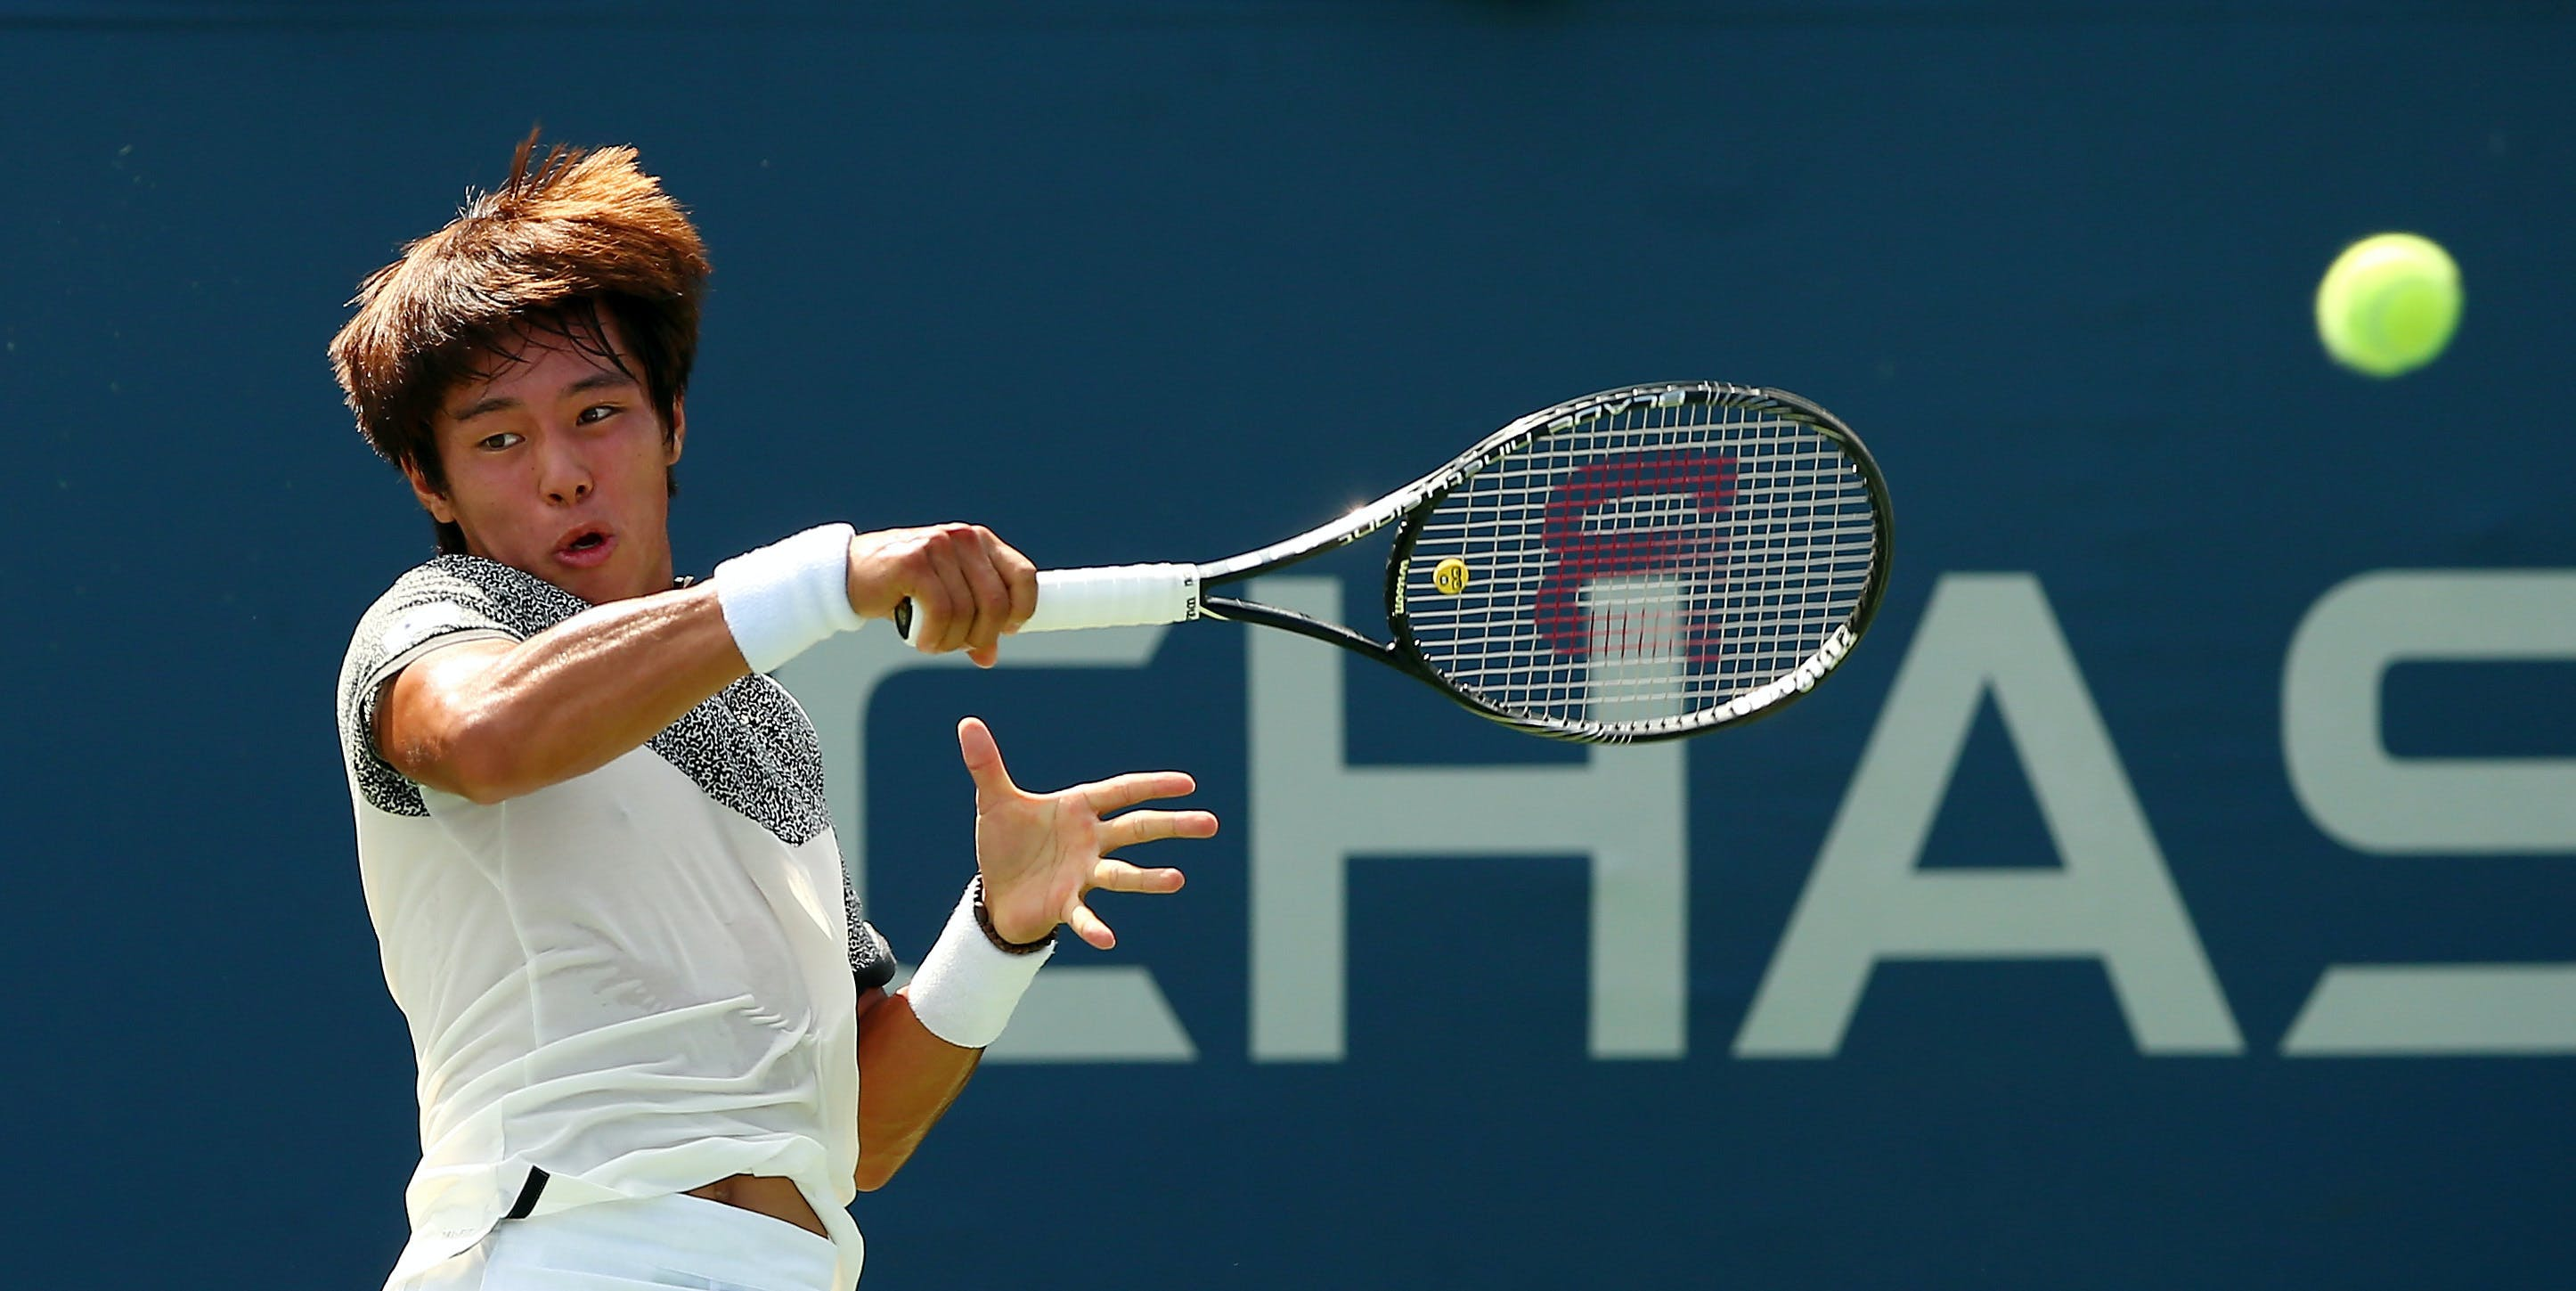 Lee Duck-hee is ranked 143 in the world.